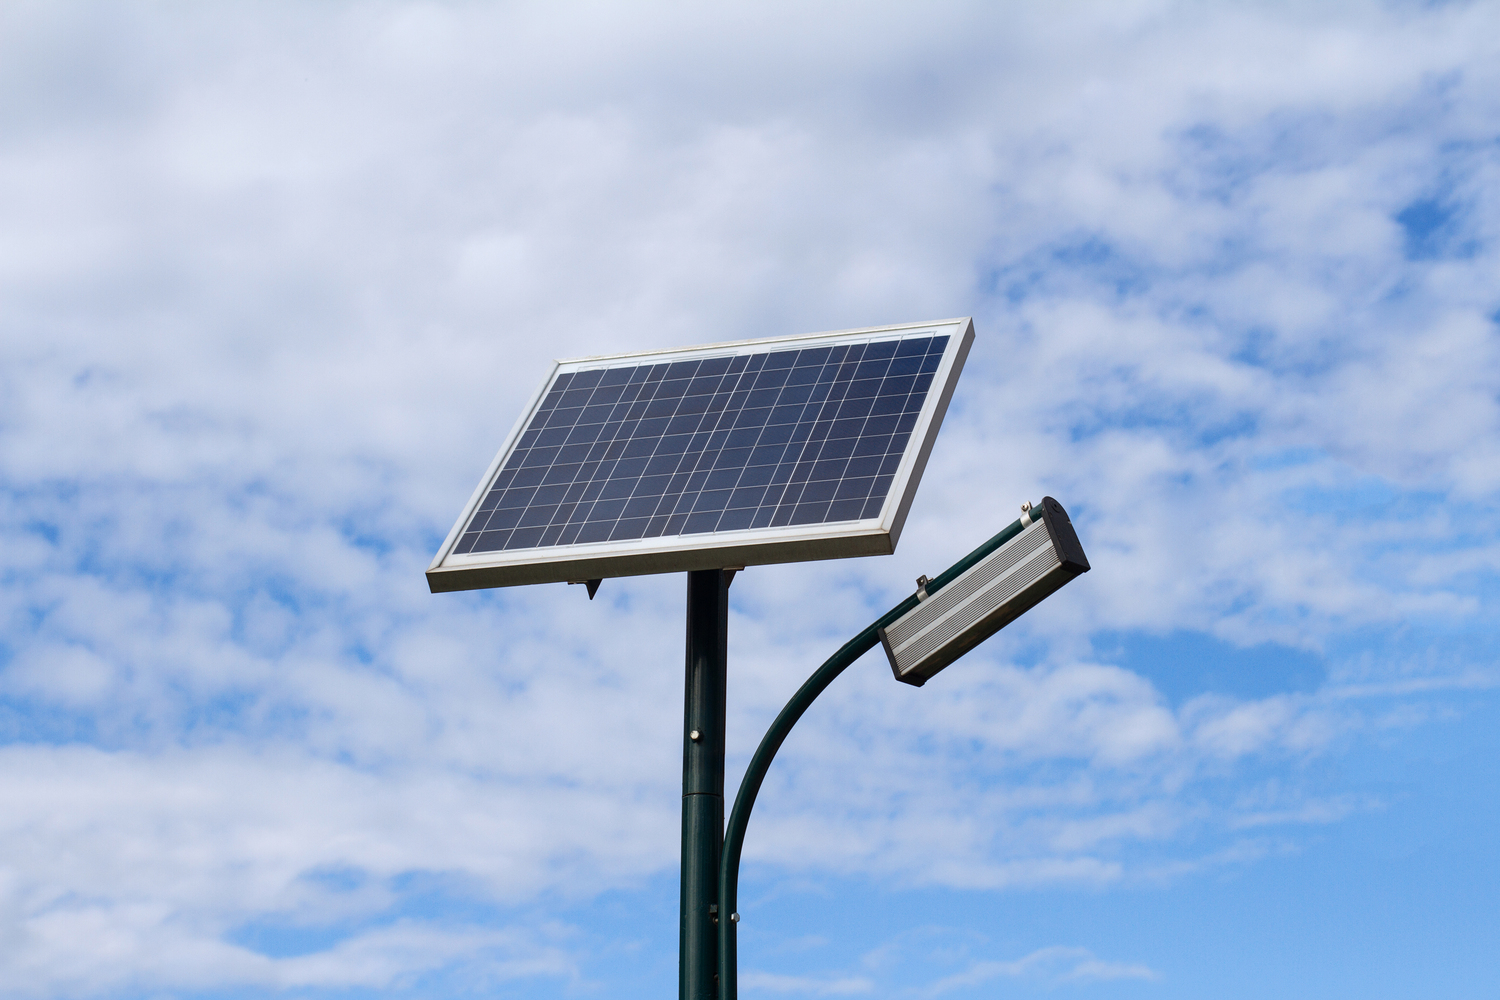 Solar Lighting for An Affordable, Sustainable Future,via macondo / Shutterstock